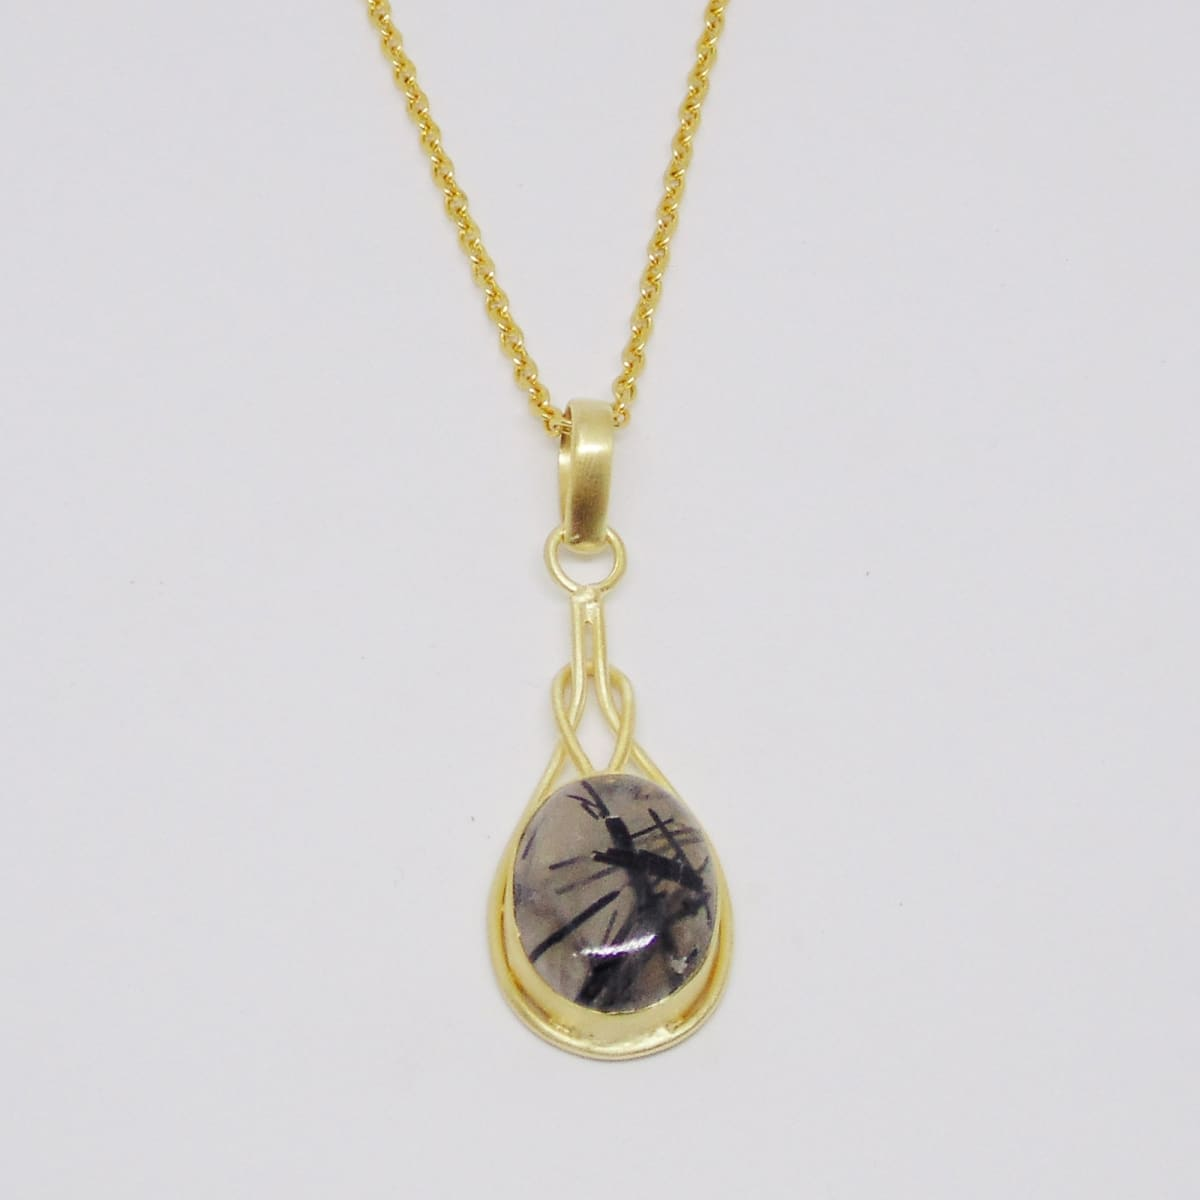 Natural Black Rutilated Quartz Gemstone Magnificence Pendant - by Bhagat Jewels